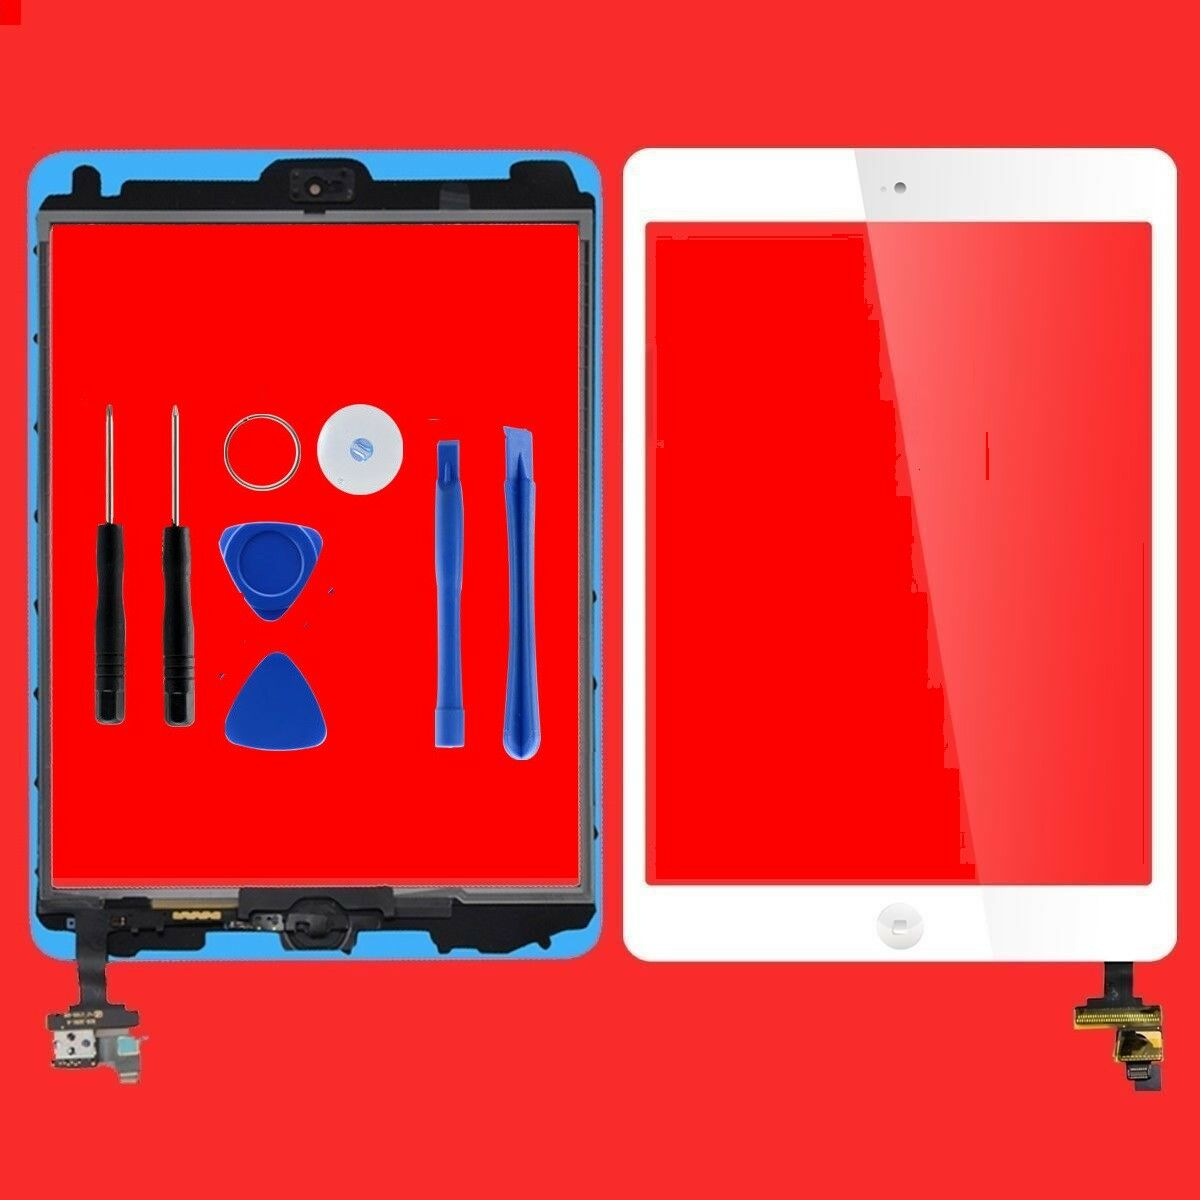 Touch Screen Glass Digitizer Screen replacement for iPad Mini 1st 2nd White Computers/Tablets & Networking